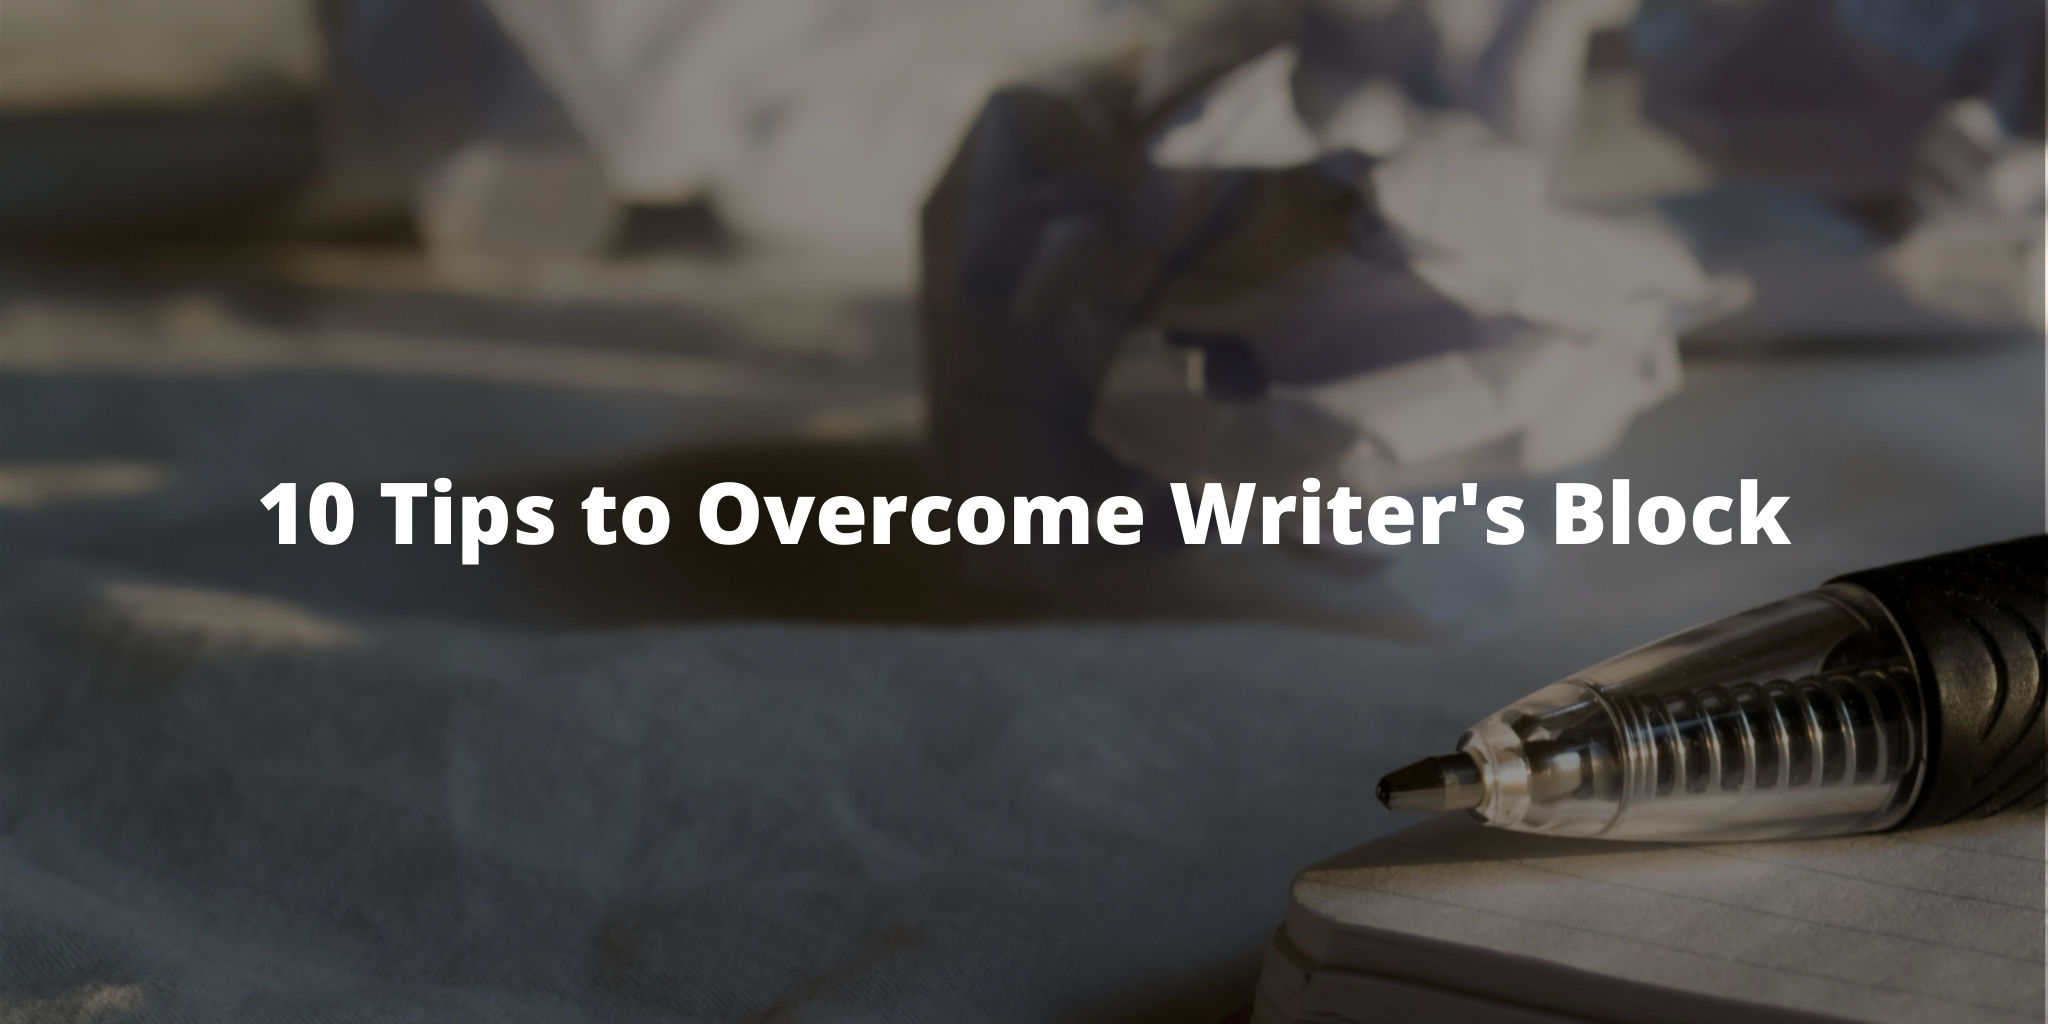 10 Tips to Overcome Writer's Block